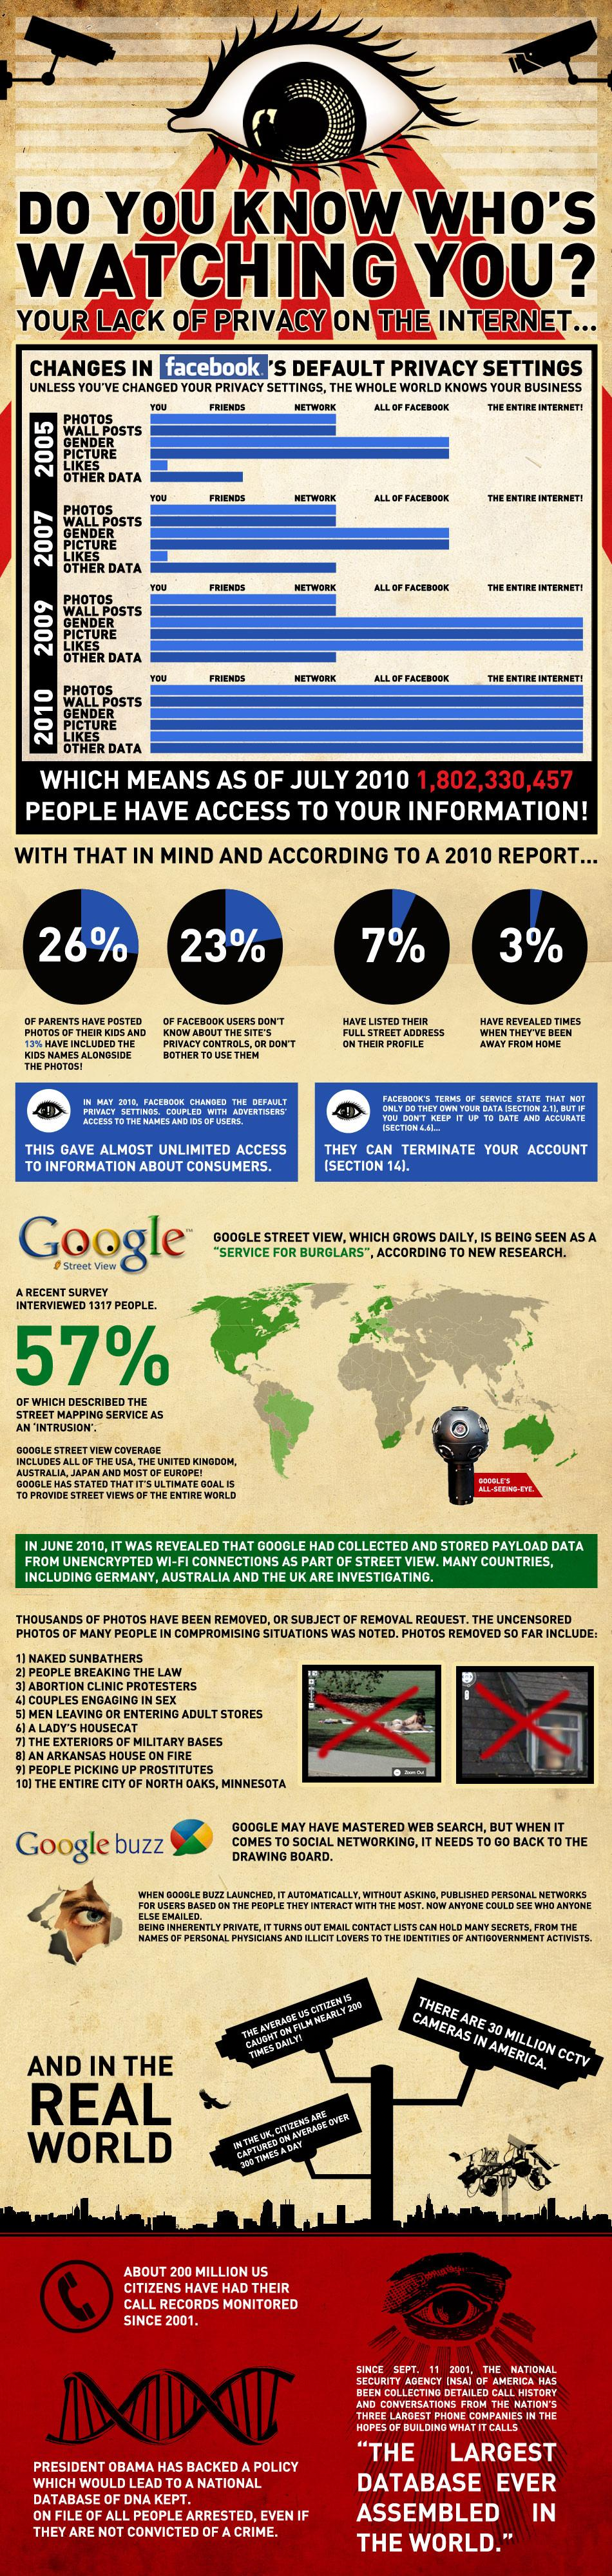 Internet Privacy Infographic: Google Privacy & Your Privacy on Facebook | WordStream